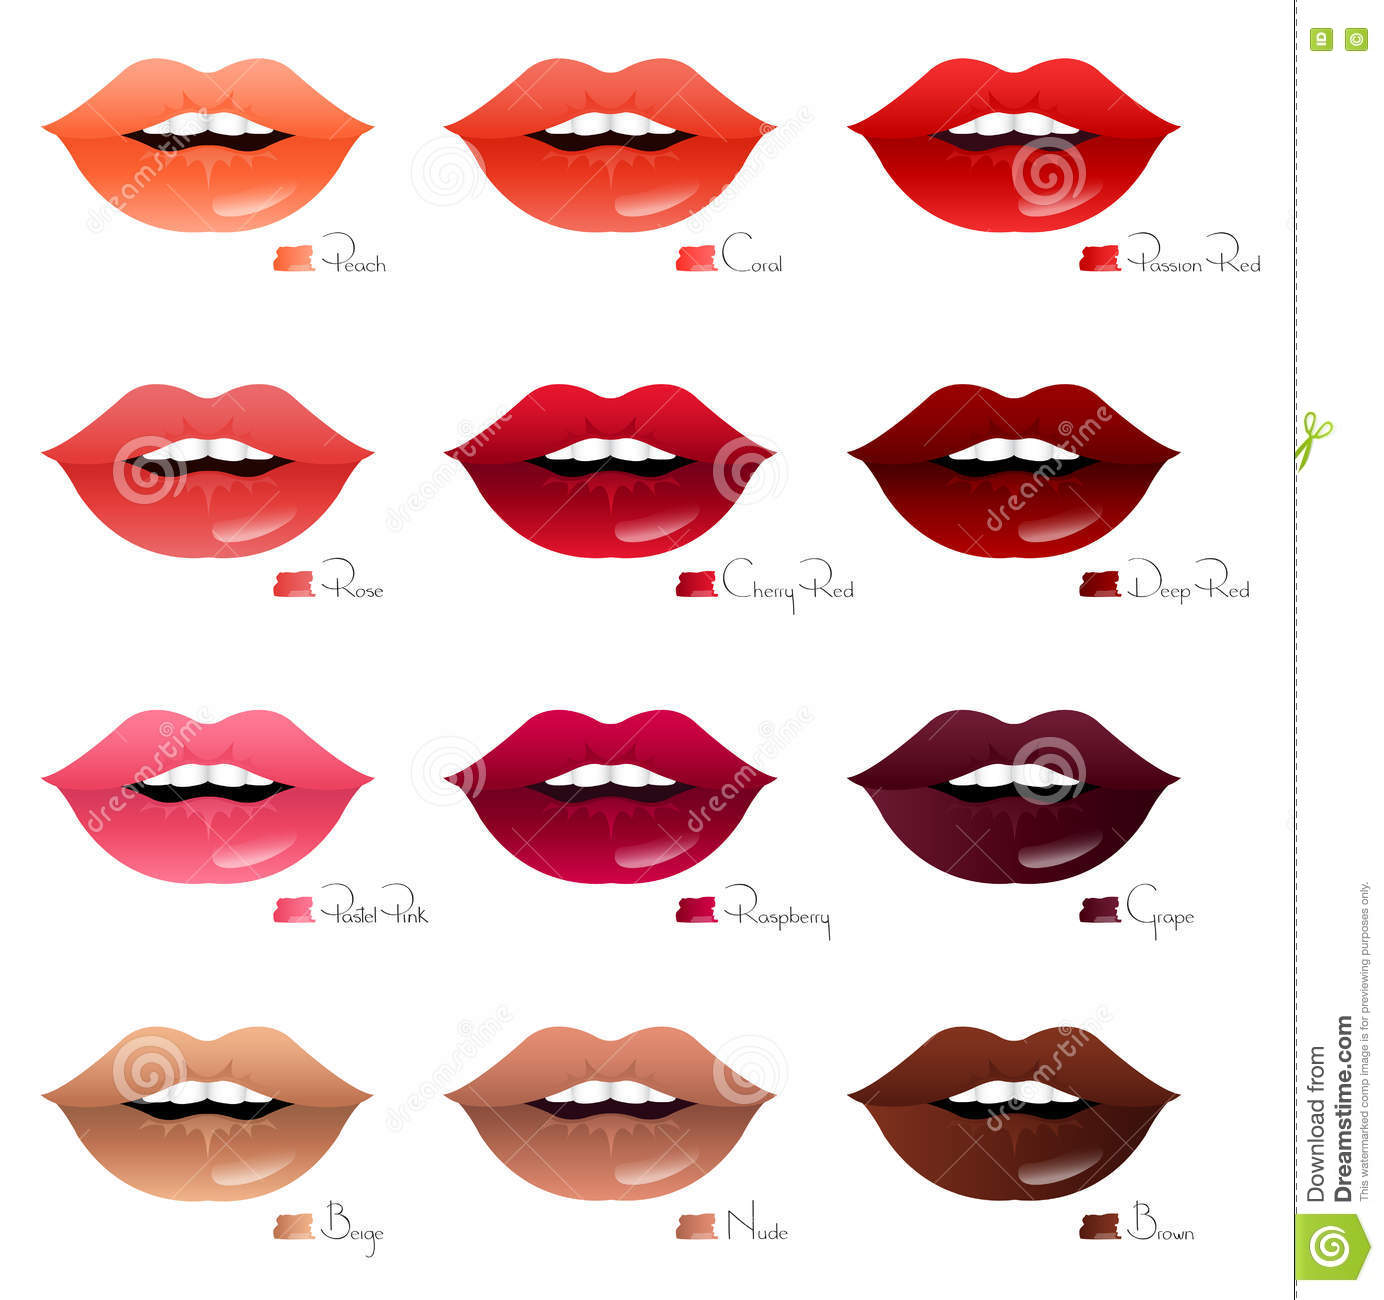 Different Shades Of Red mouths with different shades of lipsticks stock vector - image